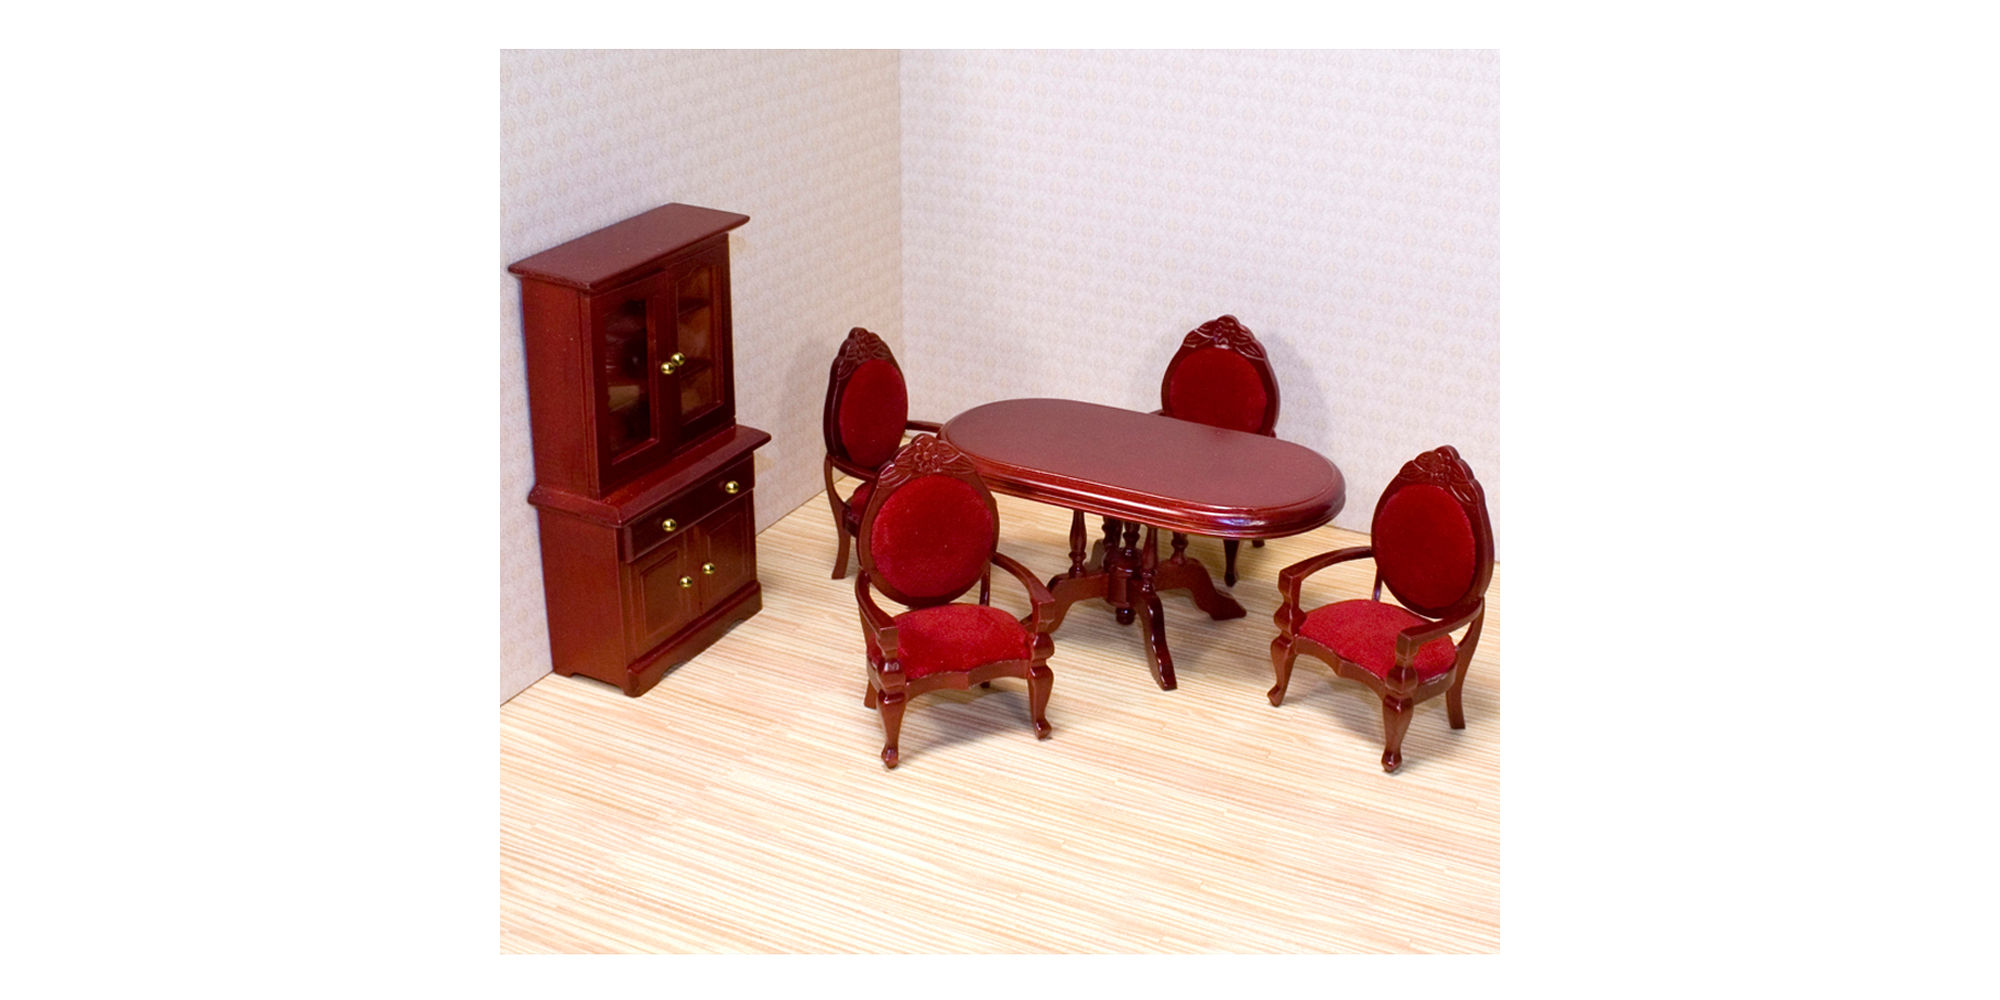 Melissa & Doug Dining Room Dollhouse Furniture